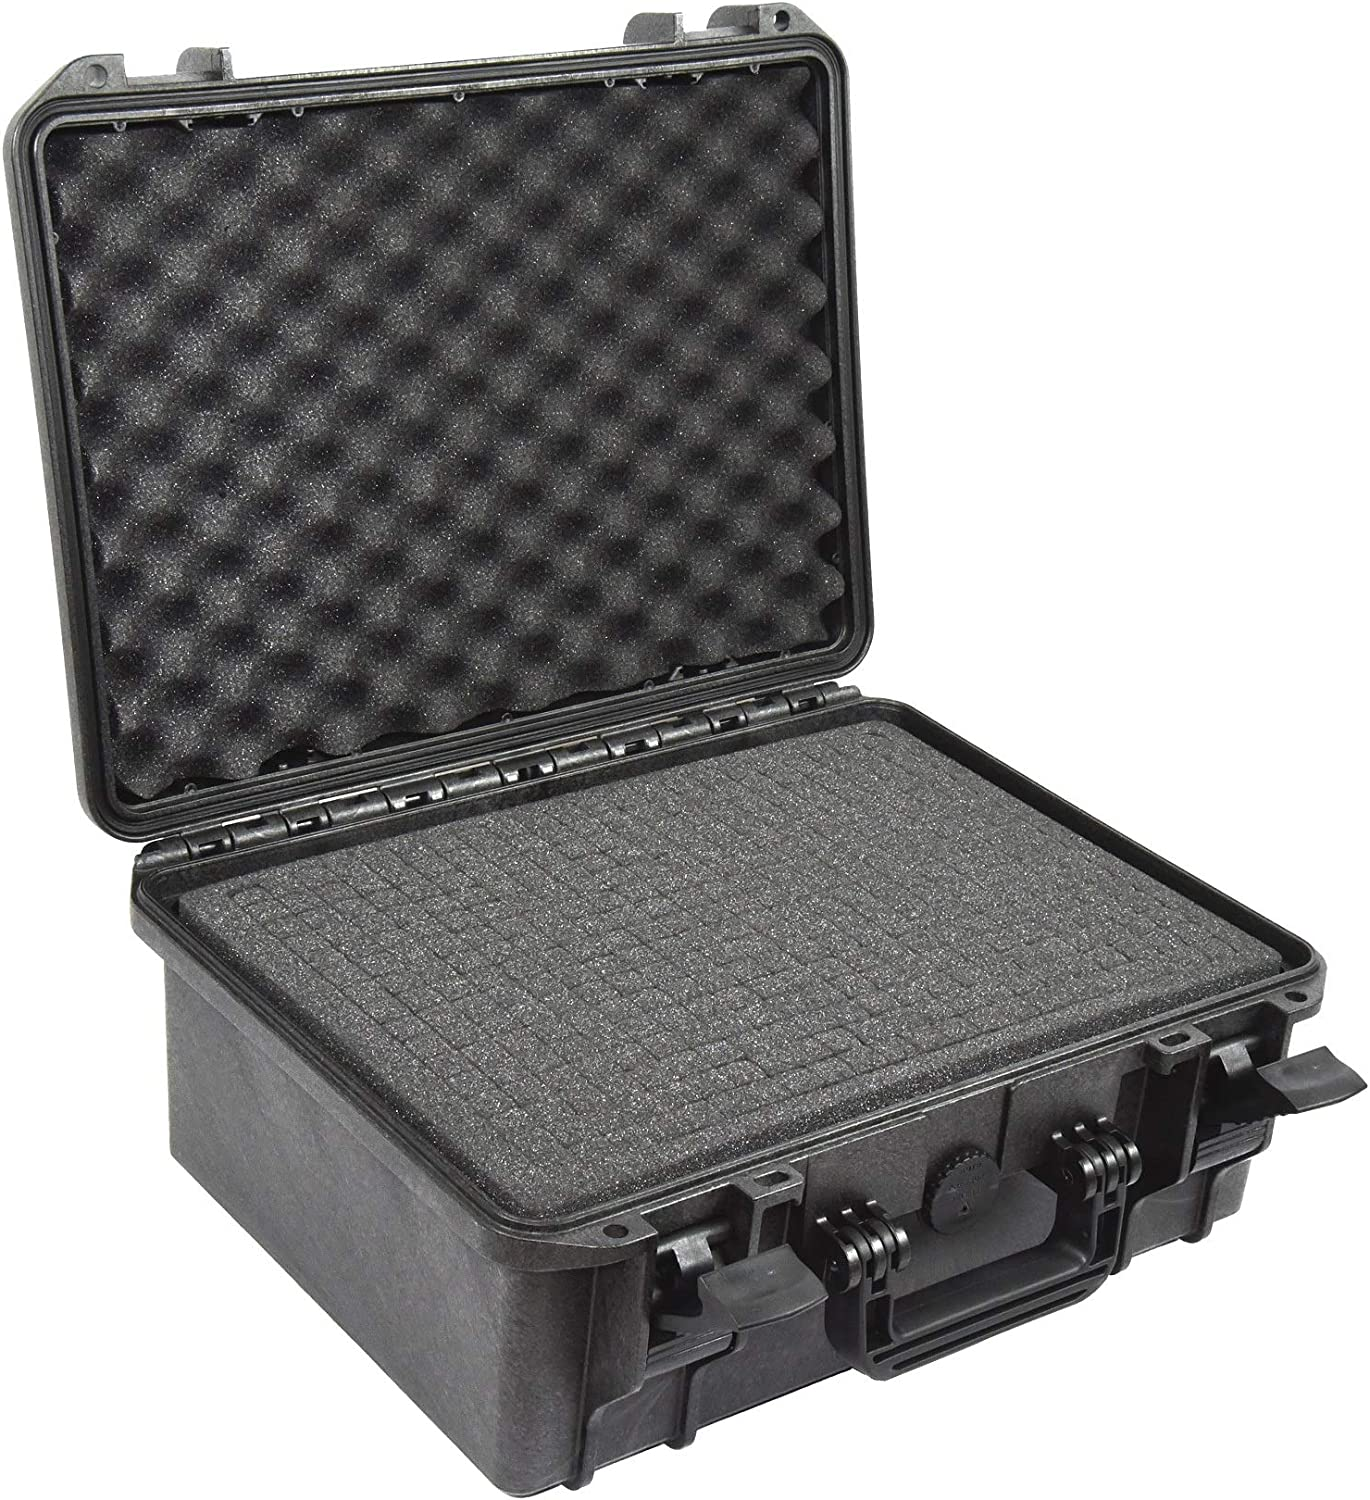 Black with Foam Elephant Elite EL1406 Waterproof Hard Case with Foam for D-SLR and Mirror-Less Camera Kits with Lenses,Audio and Video Equipment Guns,Hard Plastic Case